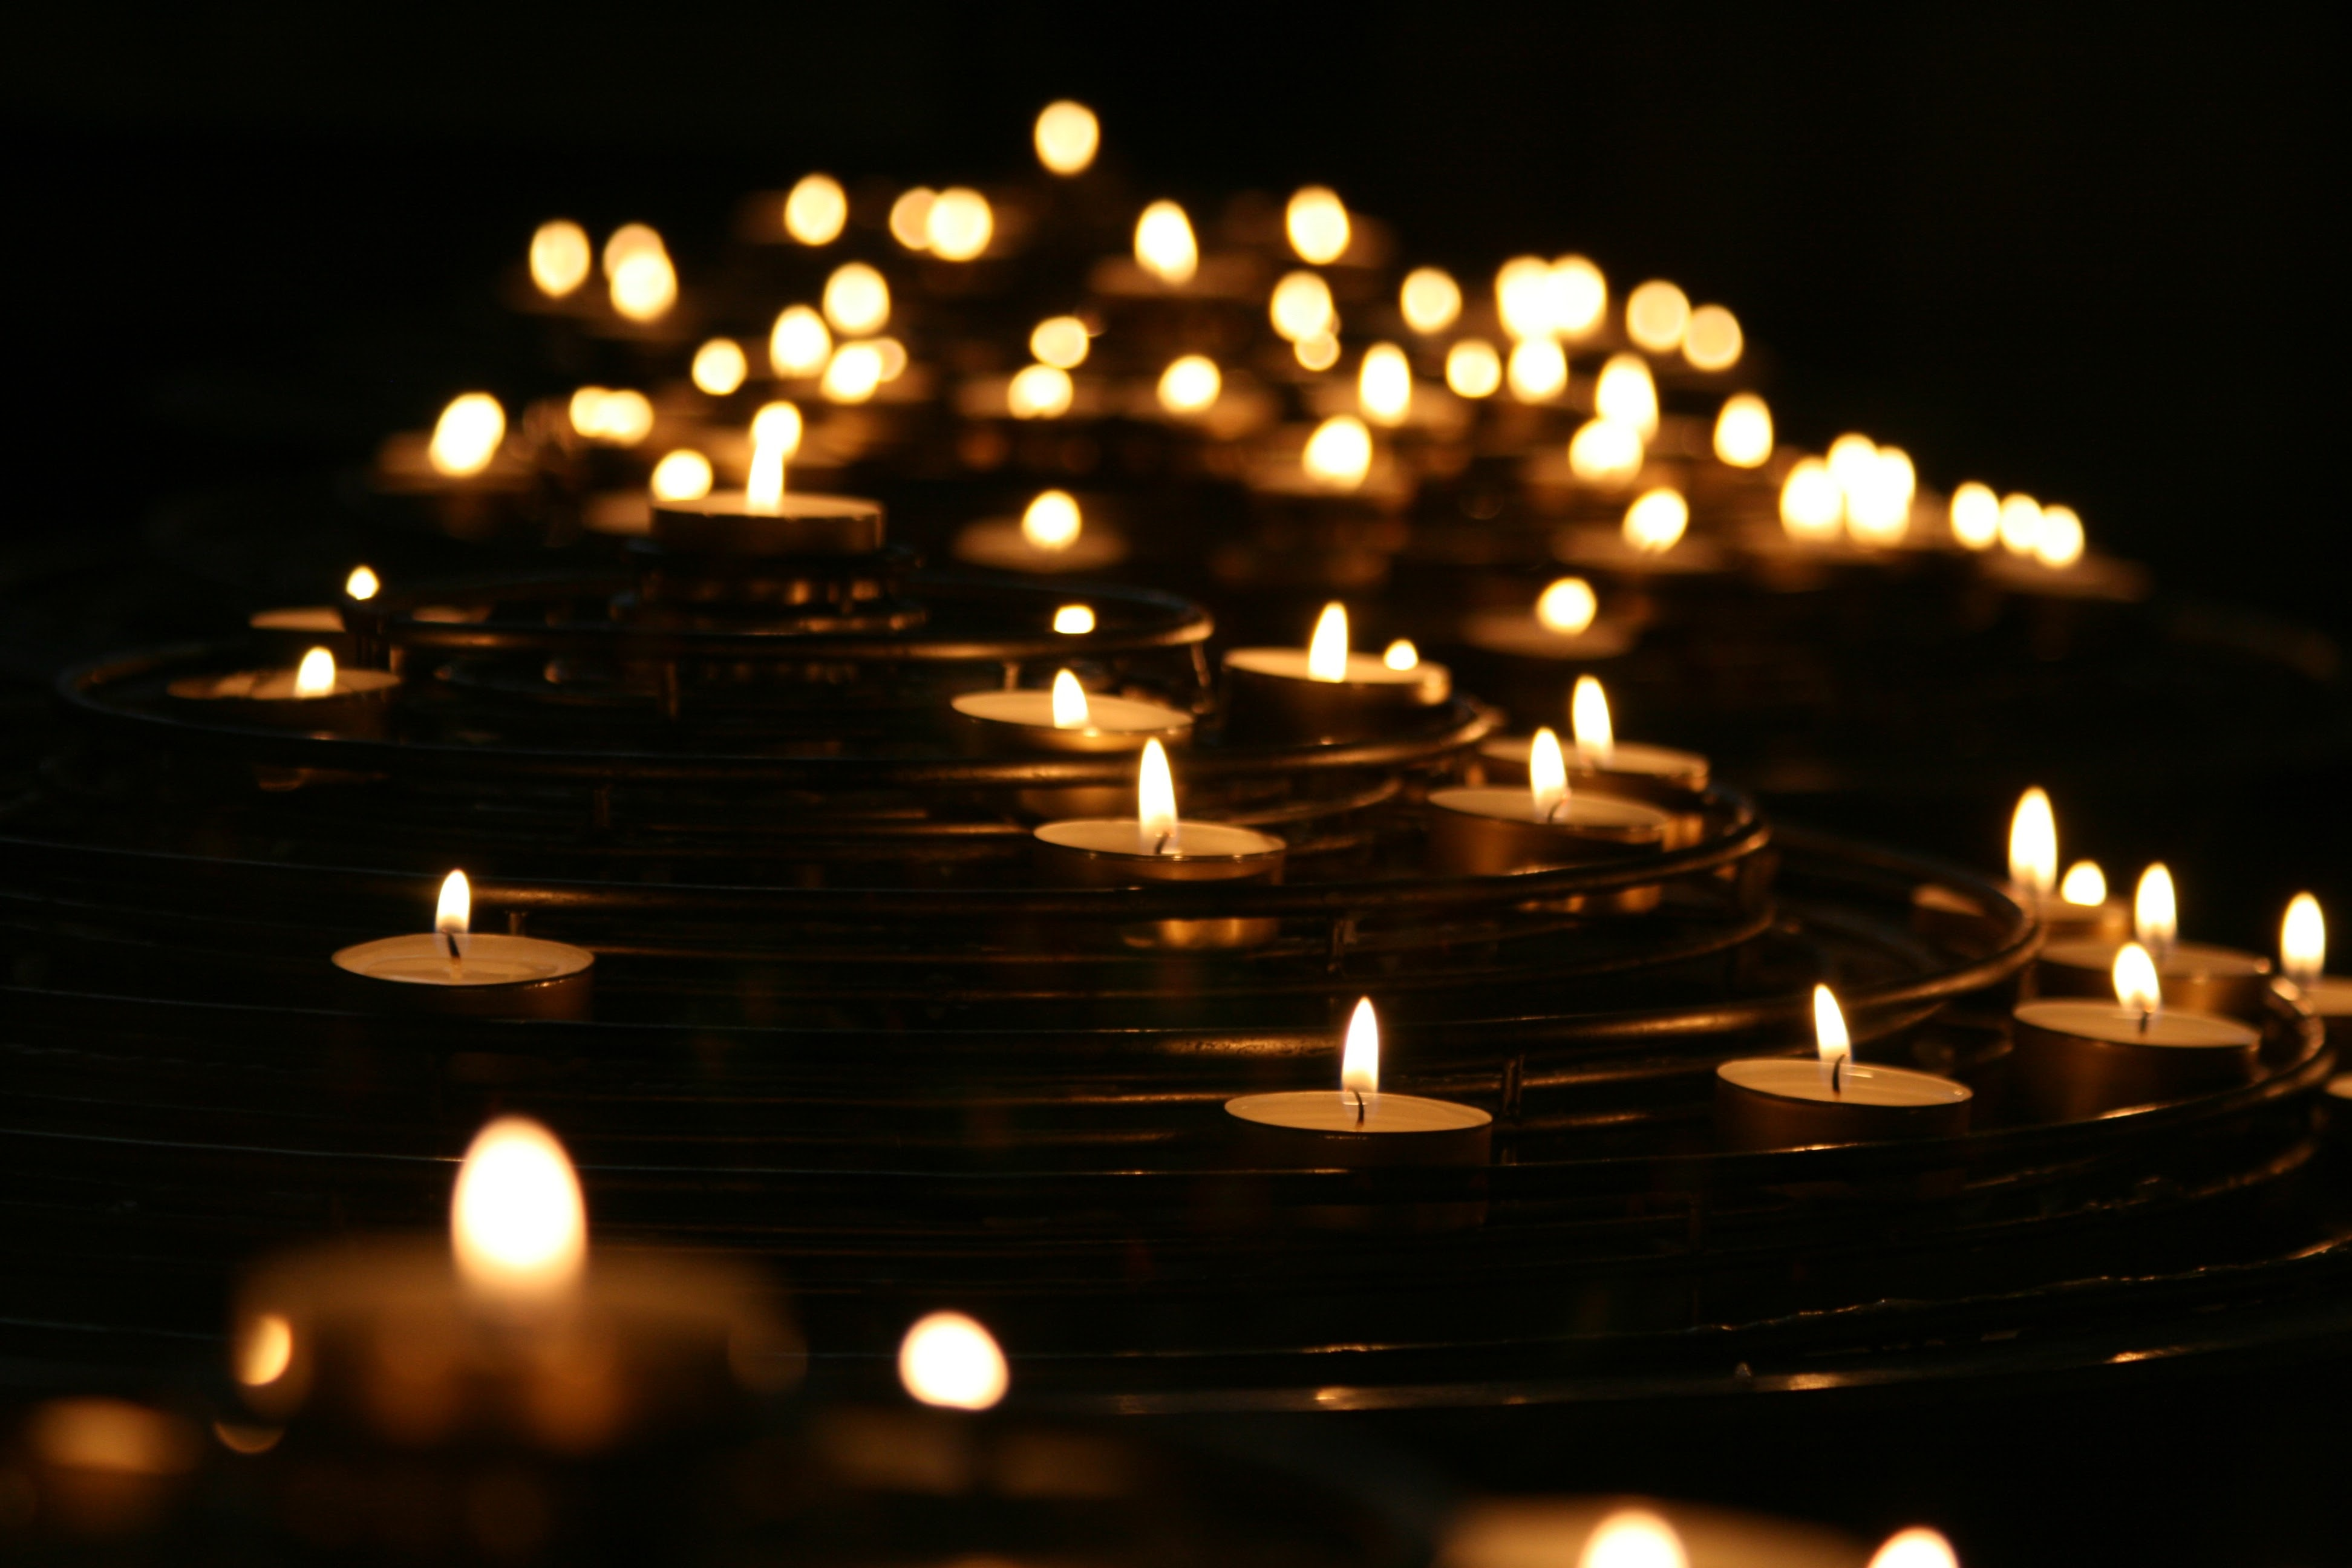 low-angle photo of lightened candles